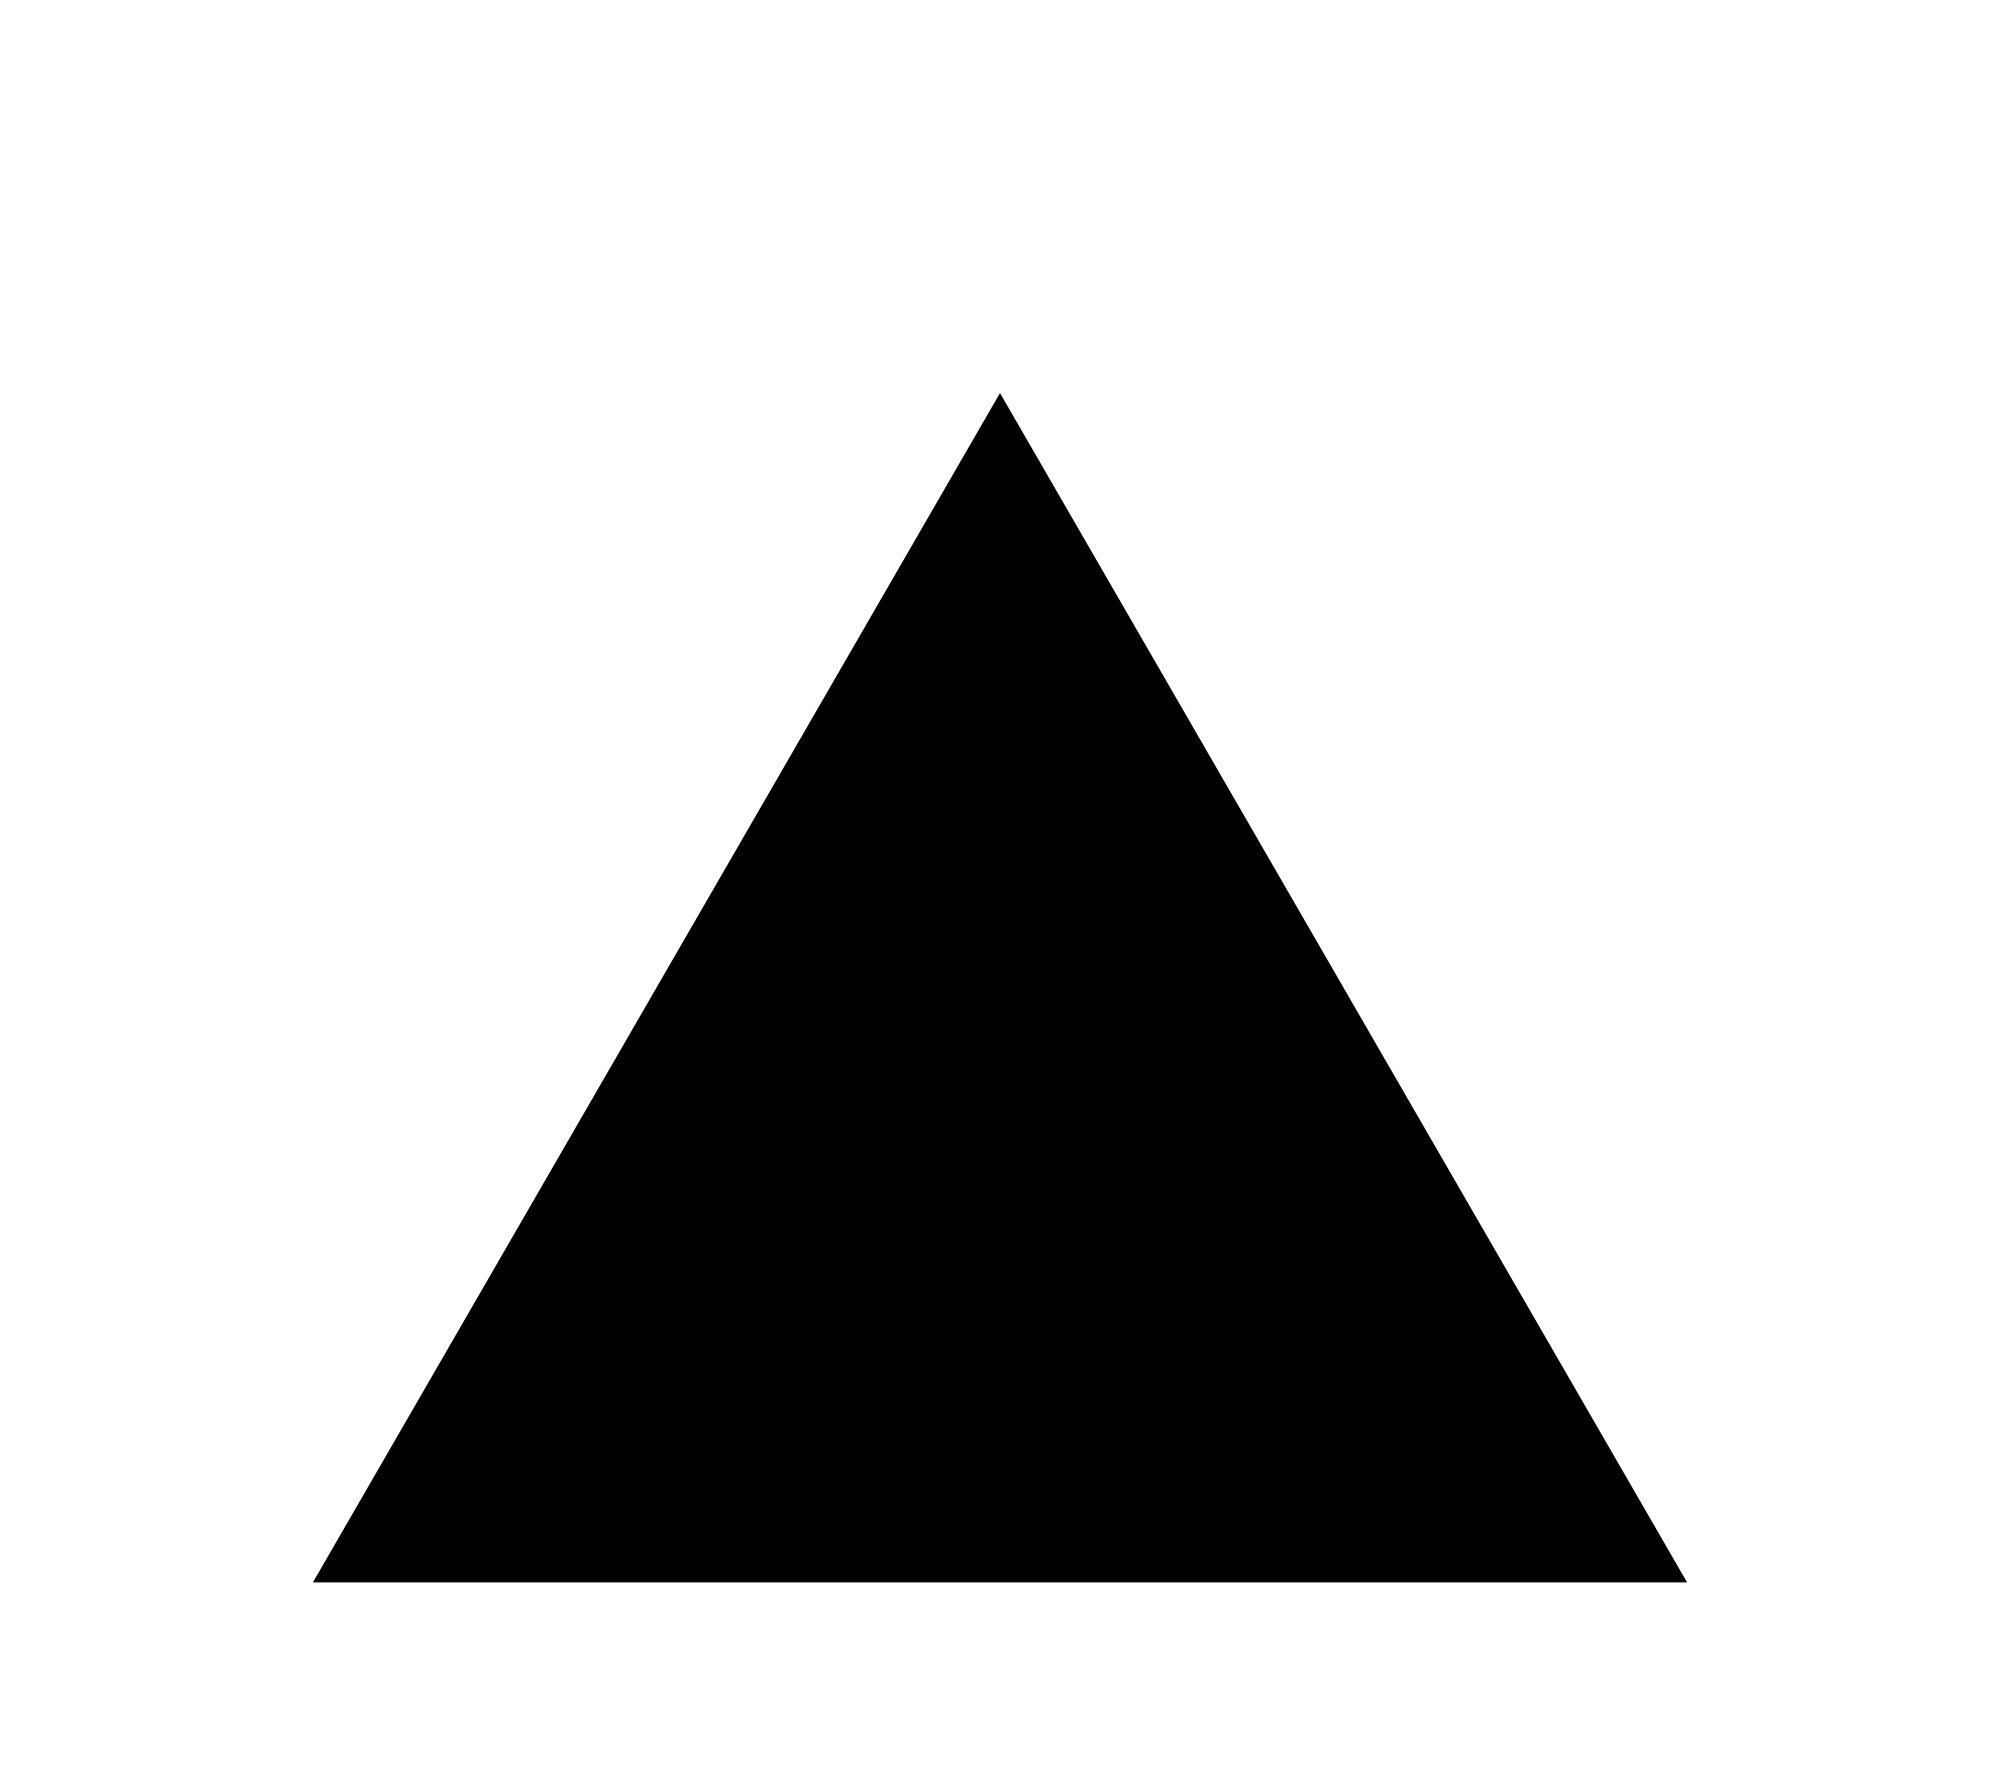 Black triangle png. File with thick white